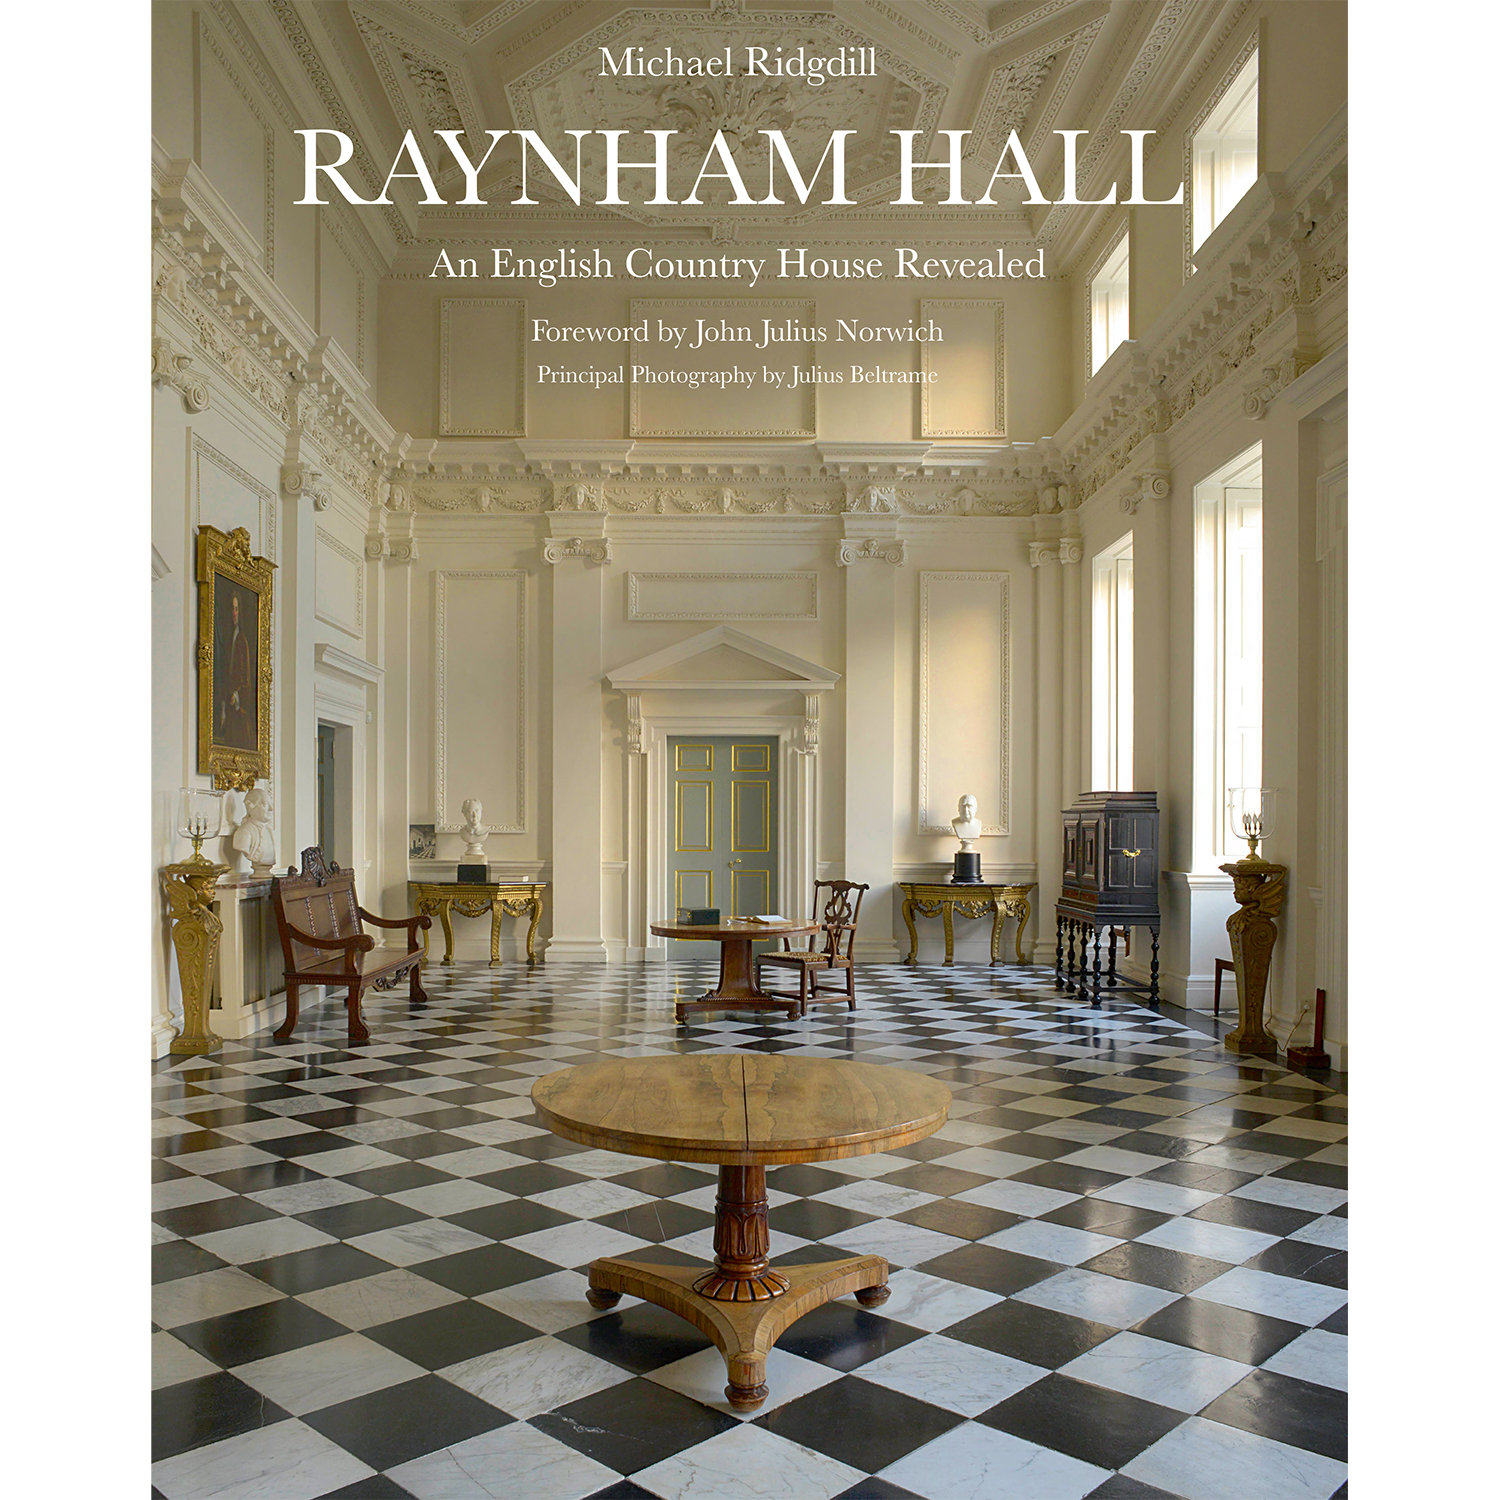 Raynham Hall: An English Country House Revealed by Michael Ridgdill